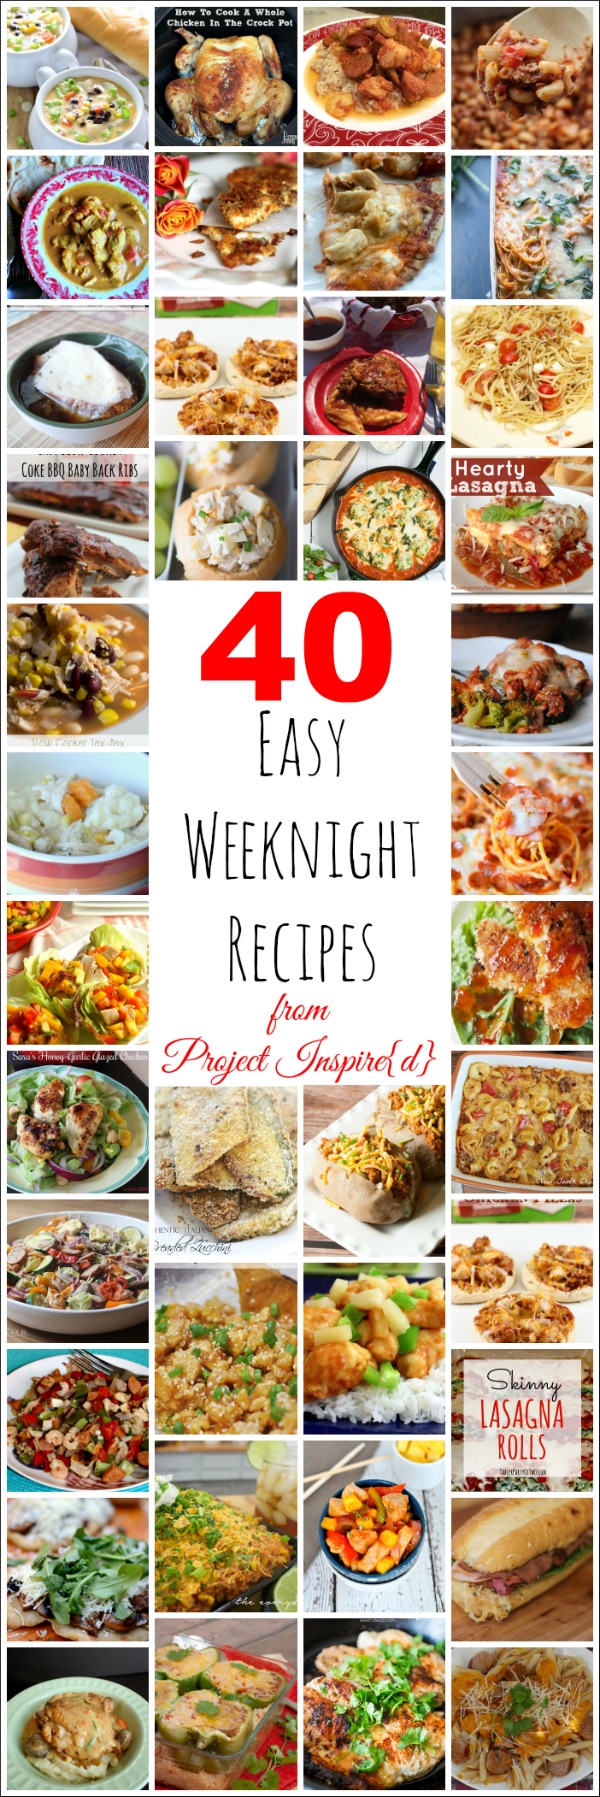 Do you feel challenged to figure out what to put on the table each night?  Here are delicious recipes to make weeknight dinners easier.  Use this round-up to put together a menu for next month.  It's a guaranteed stress reliever and a trove of new recipes to try.  Bon appetit!